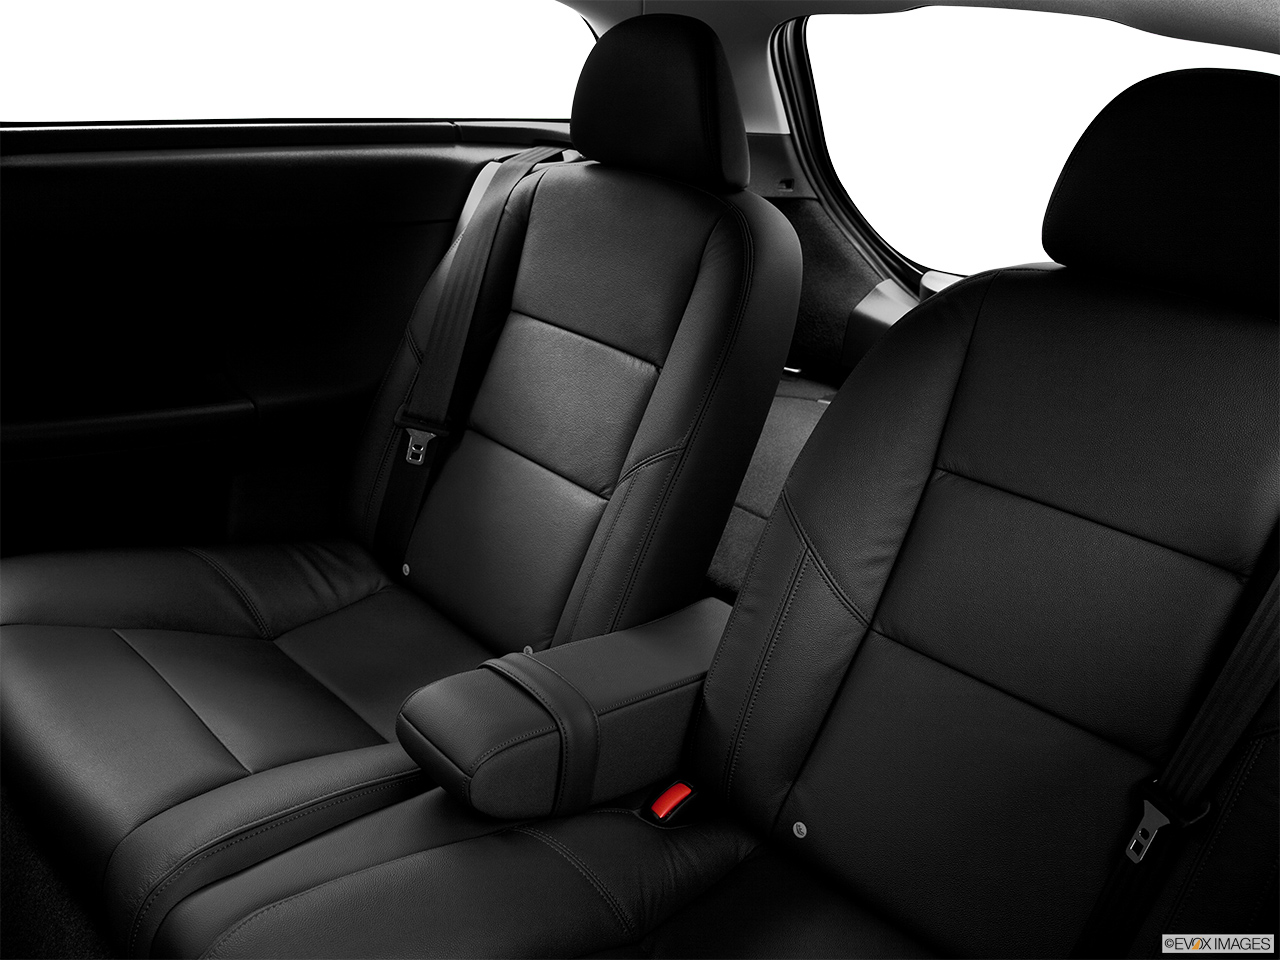 2013 Volvo C30 T5 Premier Plus Rear seats from Drivers Side.